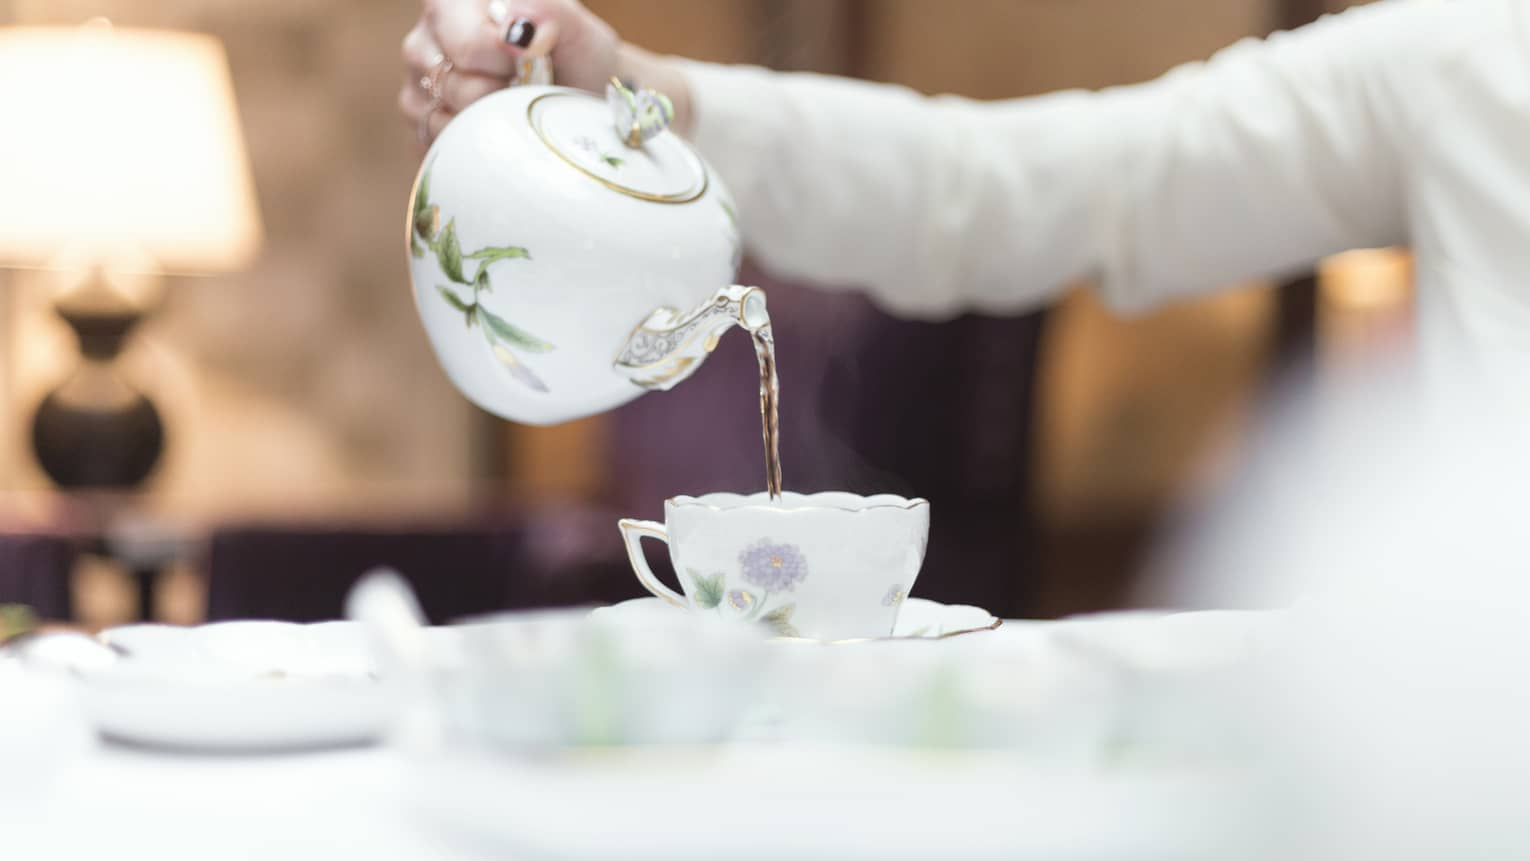 Person holds floral tea pot and pours tea into cup and saucer